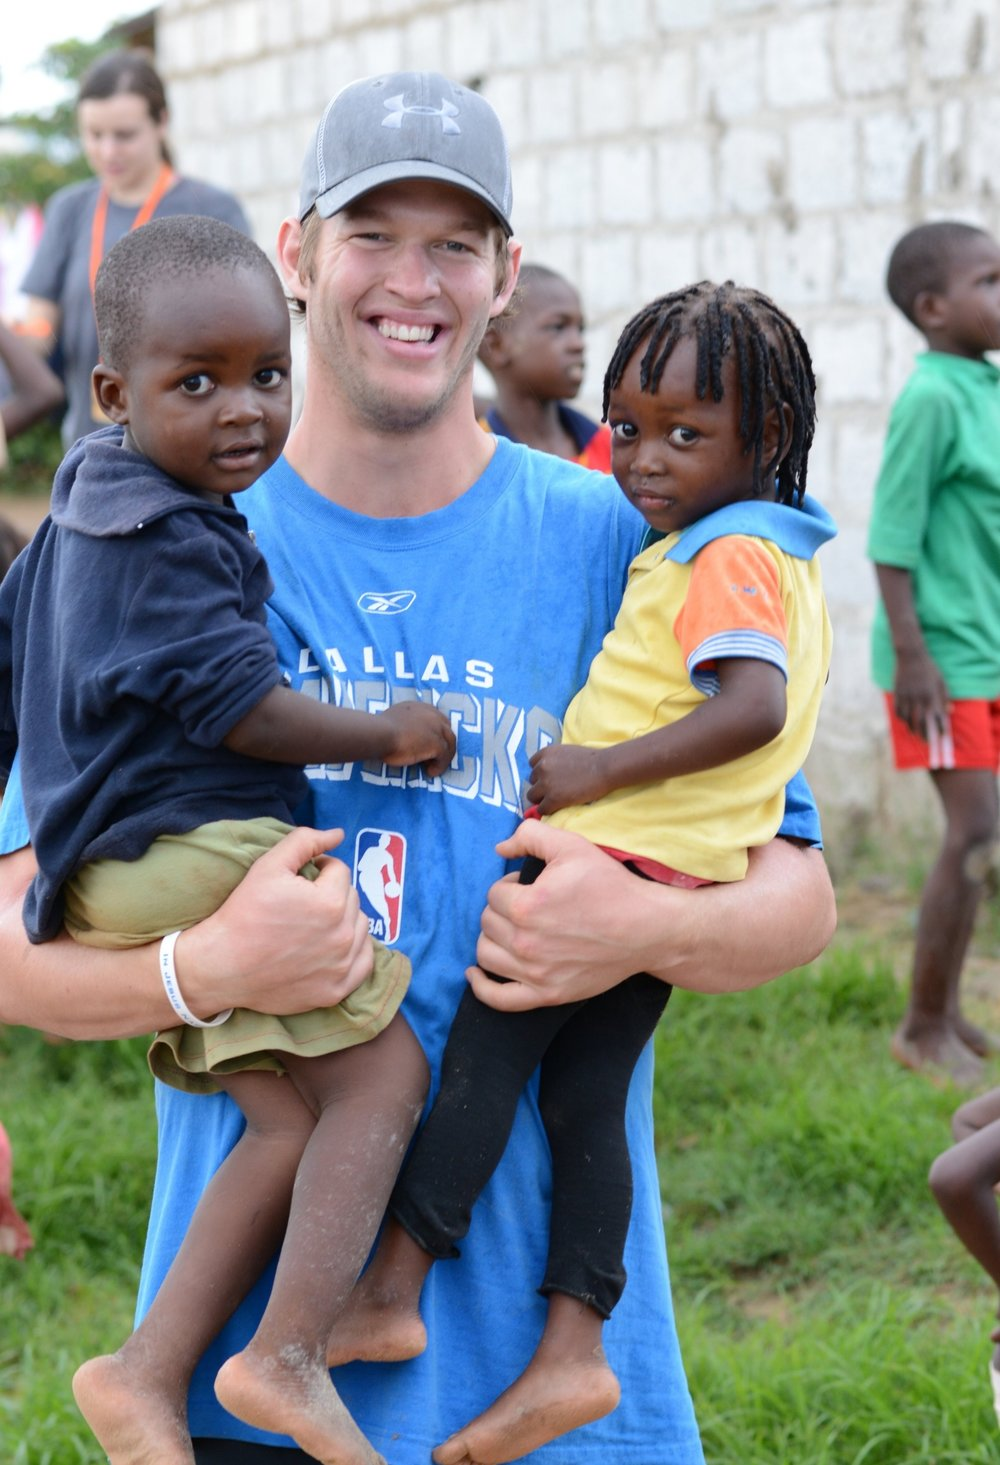 Our Mission - Kershaw's Challenge is a faith-based, others-focused organization. We exist to encourage people to use whatever God-given passion or talent they have to make a difference and give back to people in need. We want to empower people to use their spheres of influence to impact communities positively and to expand God's Kingdom. We believe that God can transform at-risk children and neighborhoods through the benevolence and impact of others.